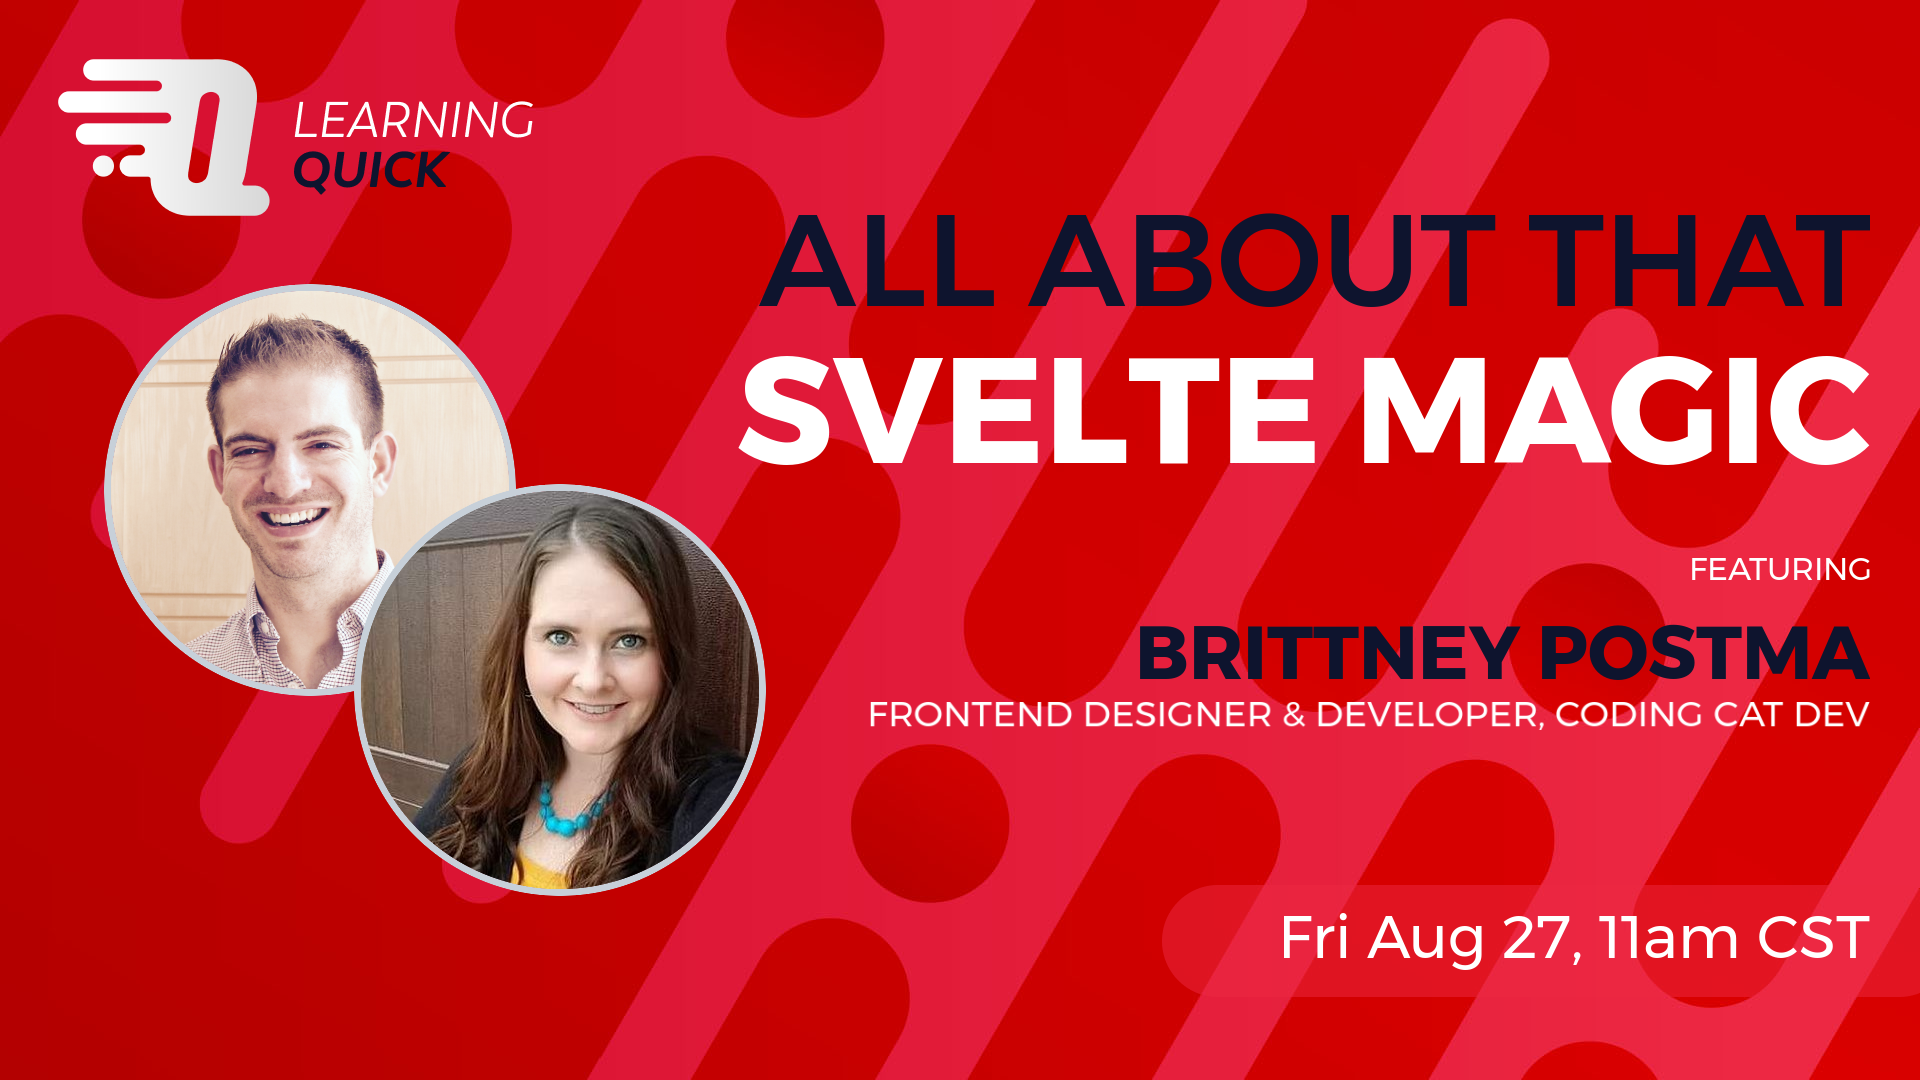 All About That Svelte Magic with Brittney Postma